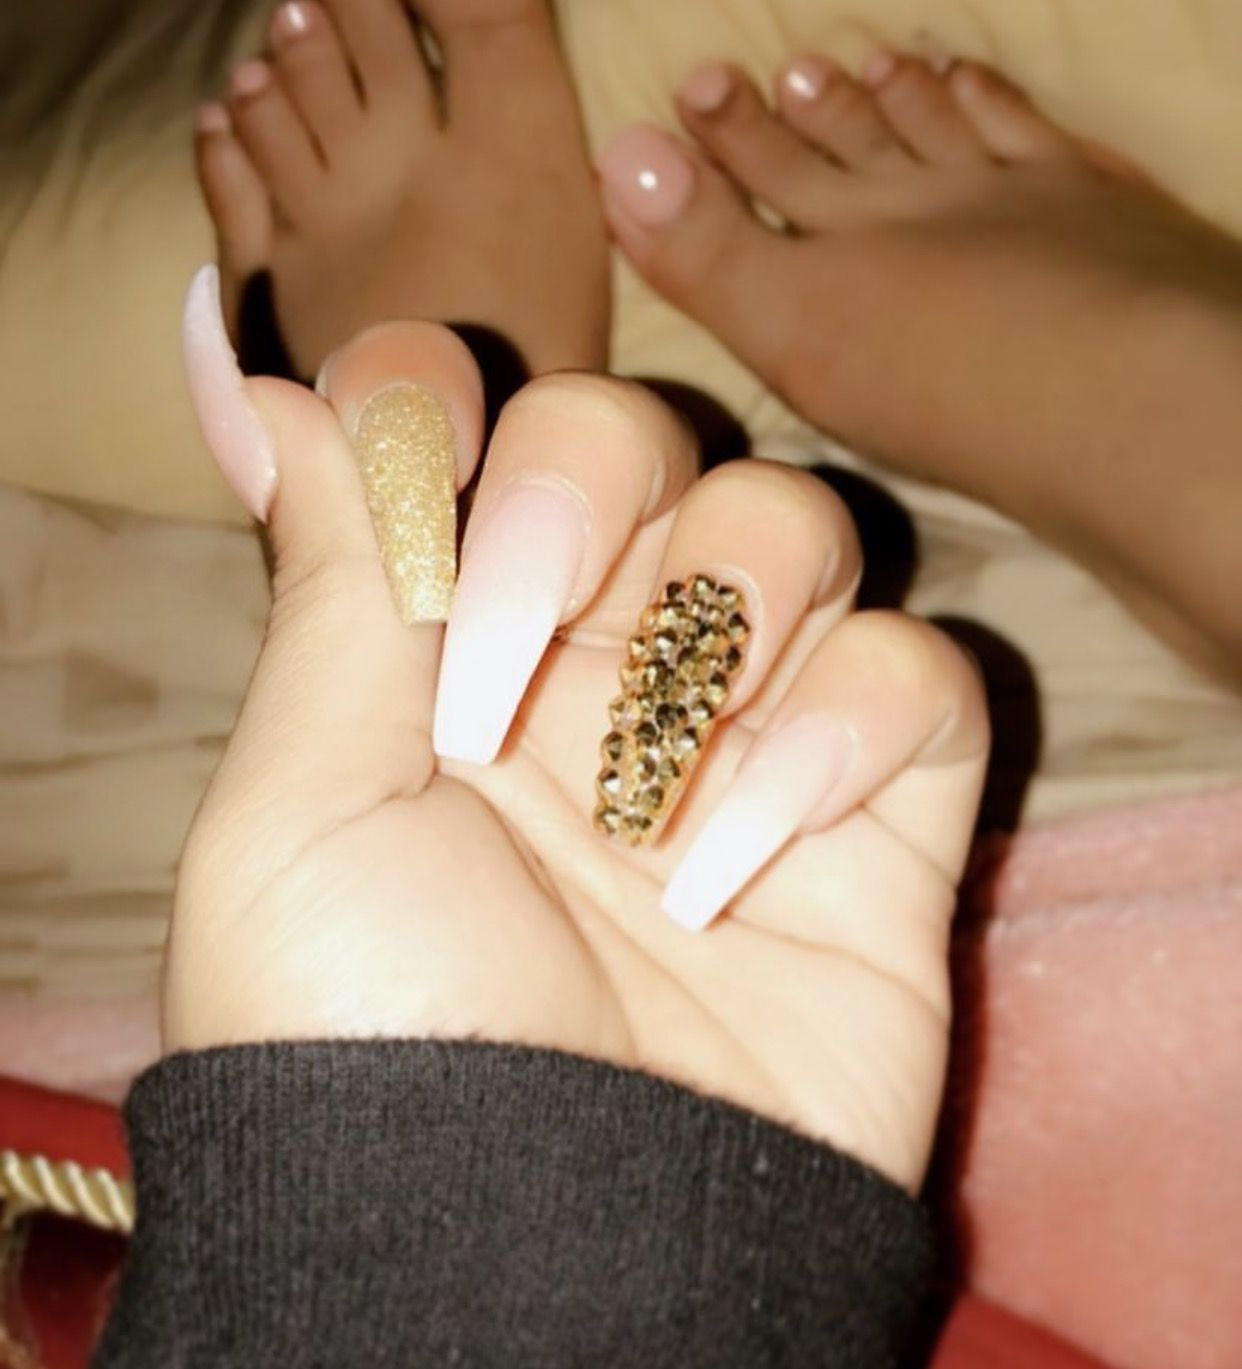 Pin by AMOUR DOLL ♡ on n a i l s ♡ | Pinterest | Nail inspo, Nail ...